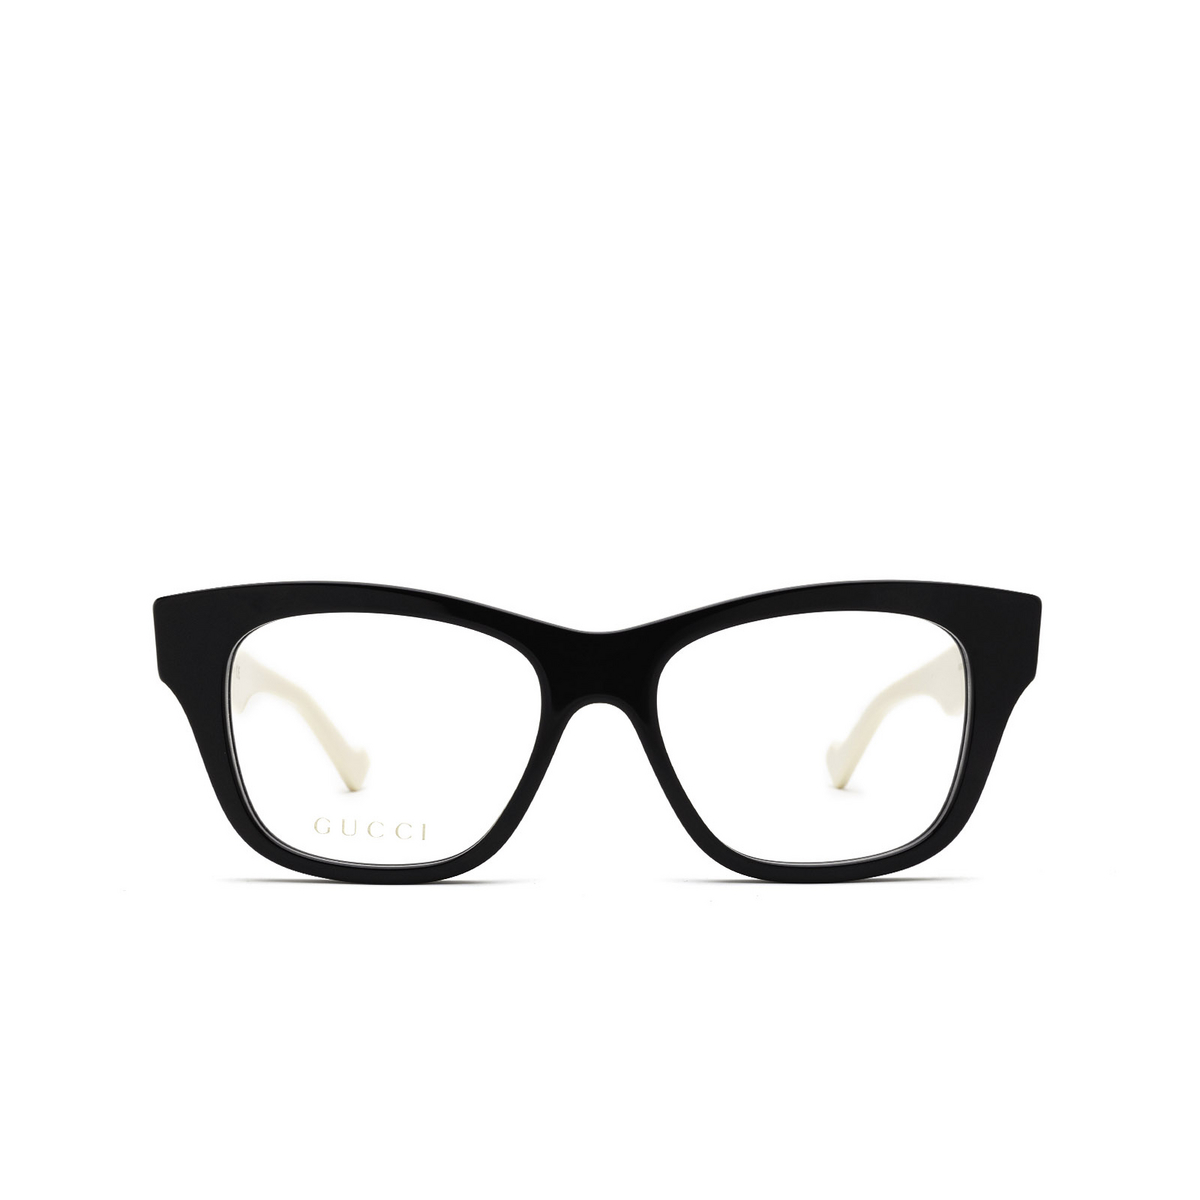 Gucci® Cat-eye Eyeglasses: GG0999O color Black 002 - front view.